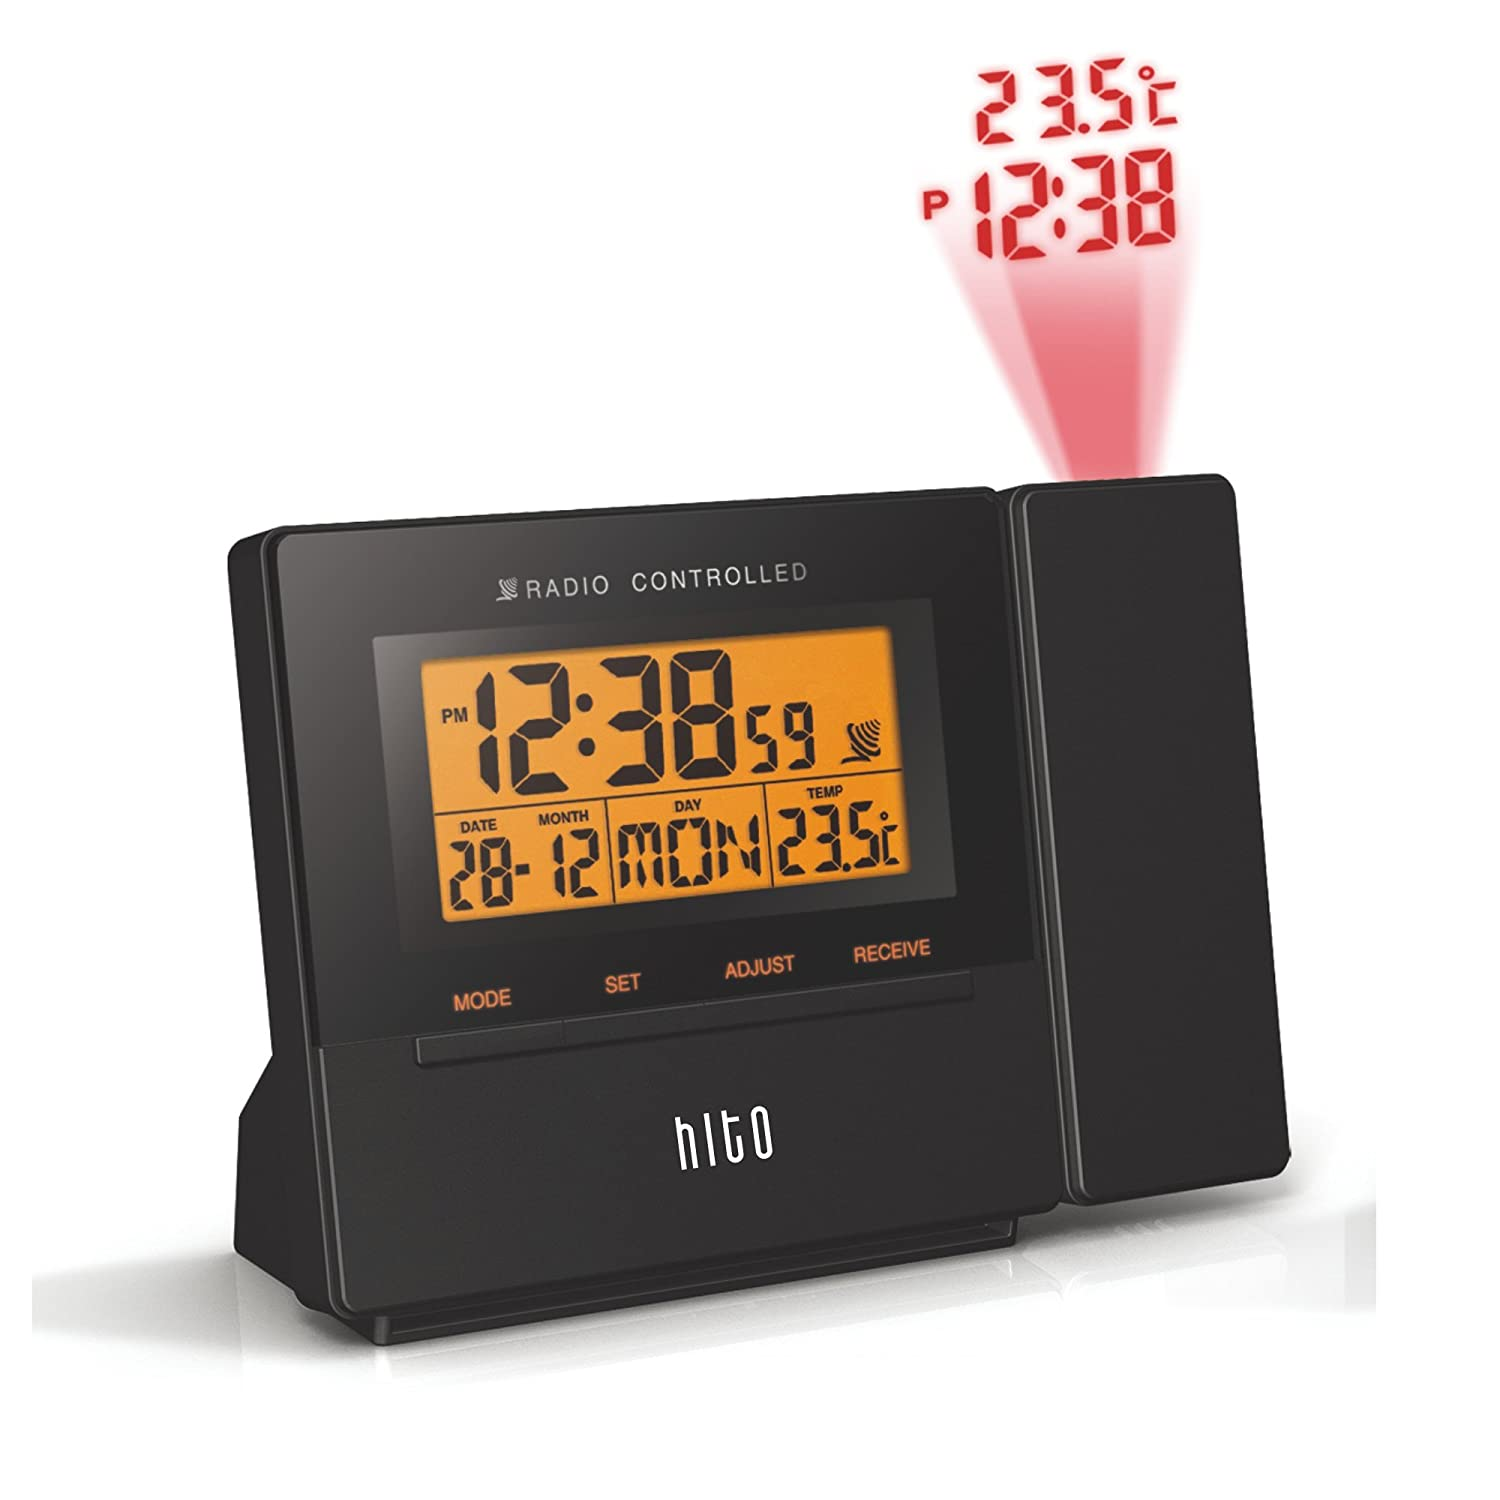 hito atomic radio controlled projection alarm clock w date temperature week ebay. Black Bedroom Furniture Sets. Home Design Ideas